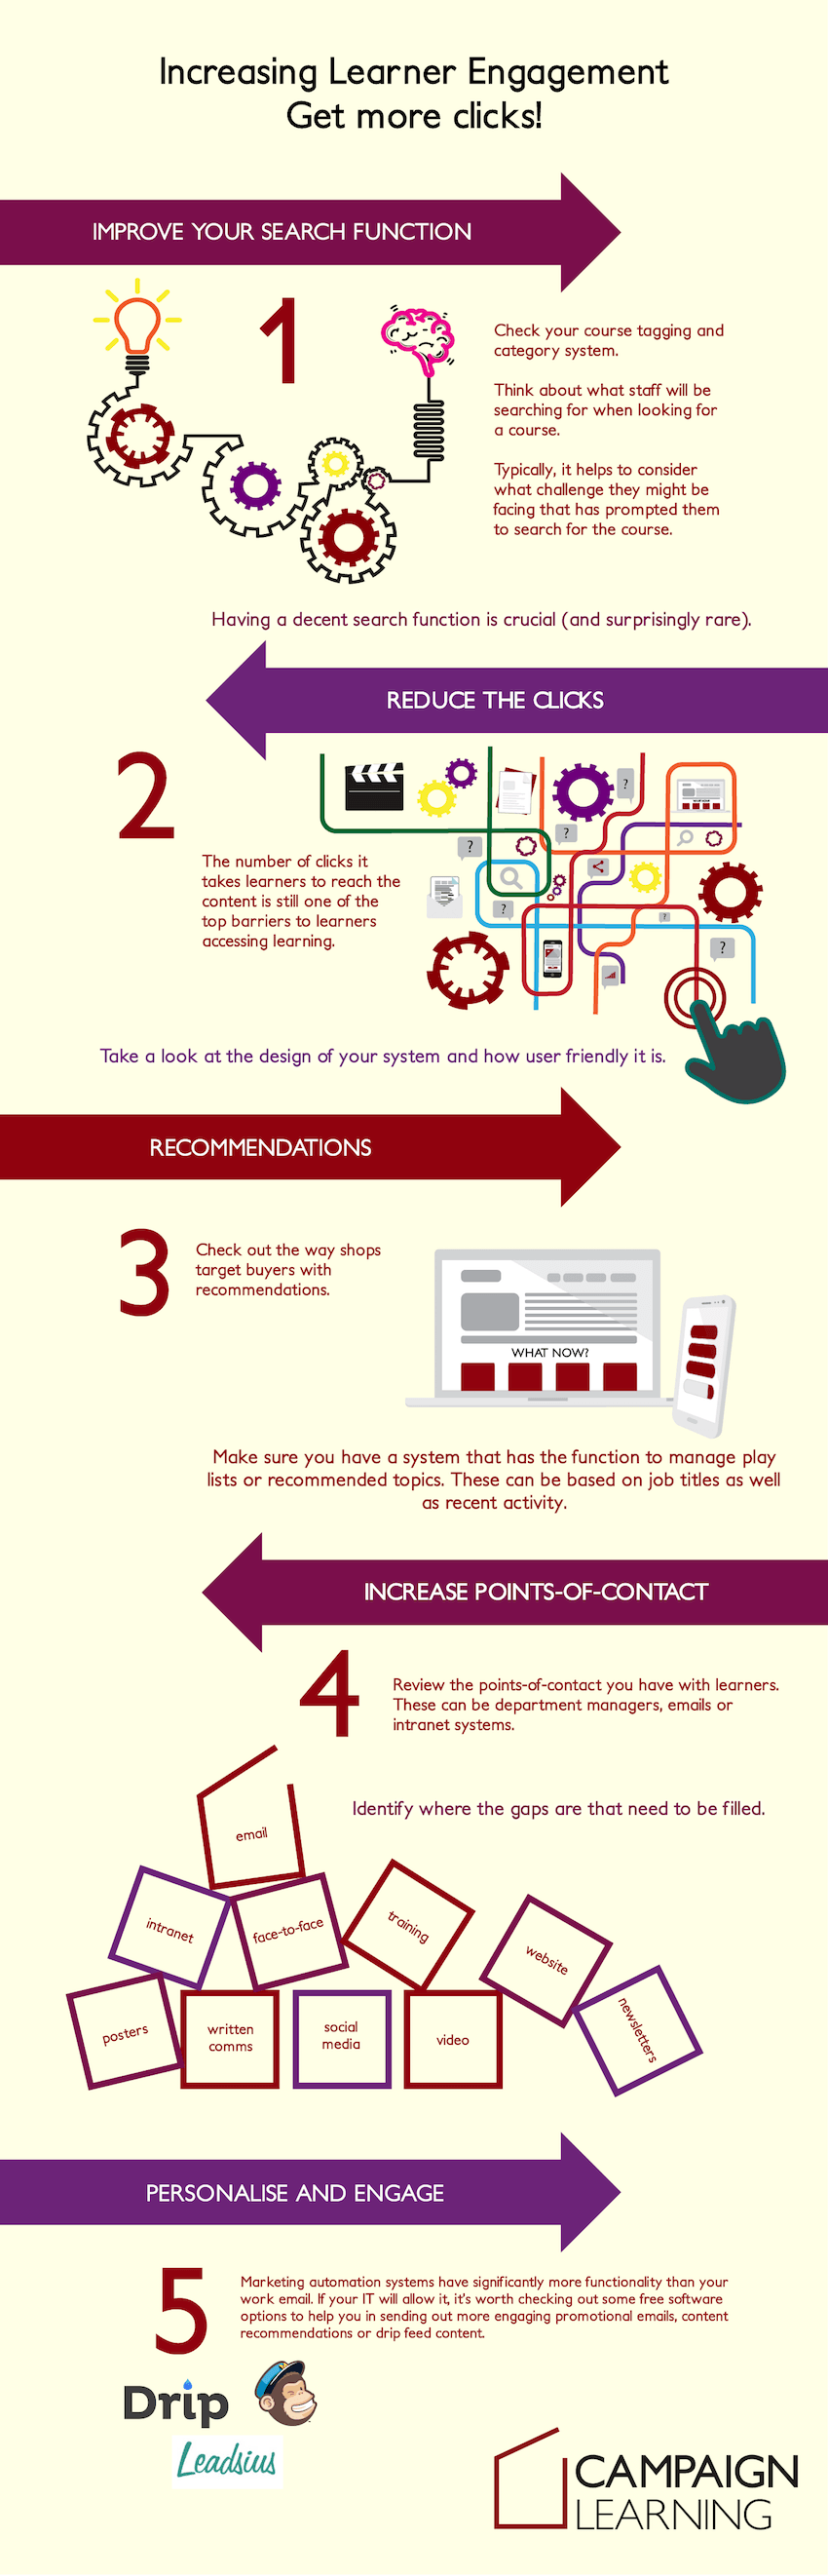 5 Ways to Get More eLearning Course Clicks Infographic